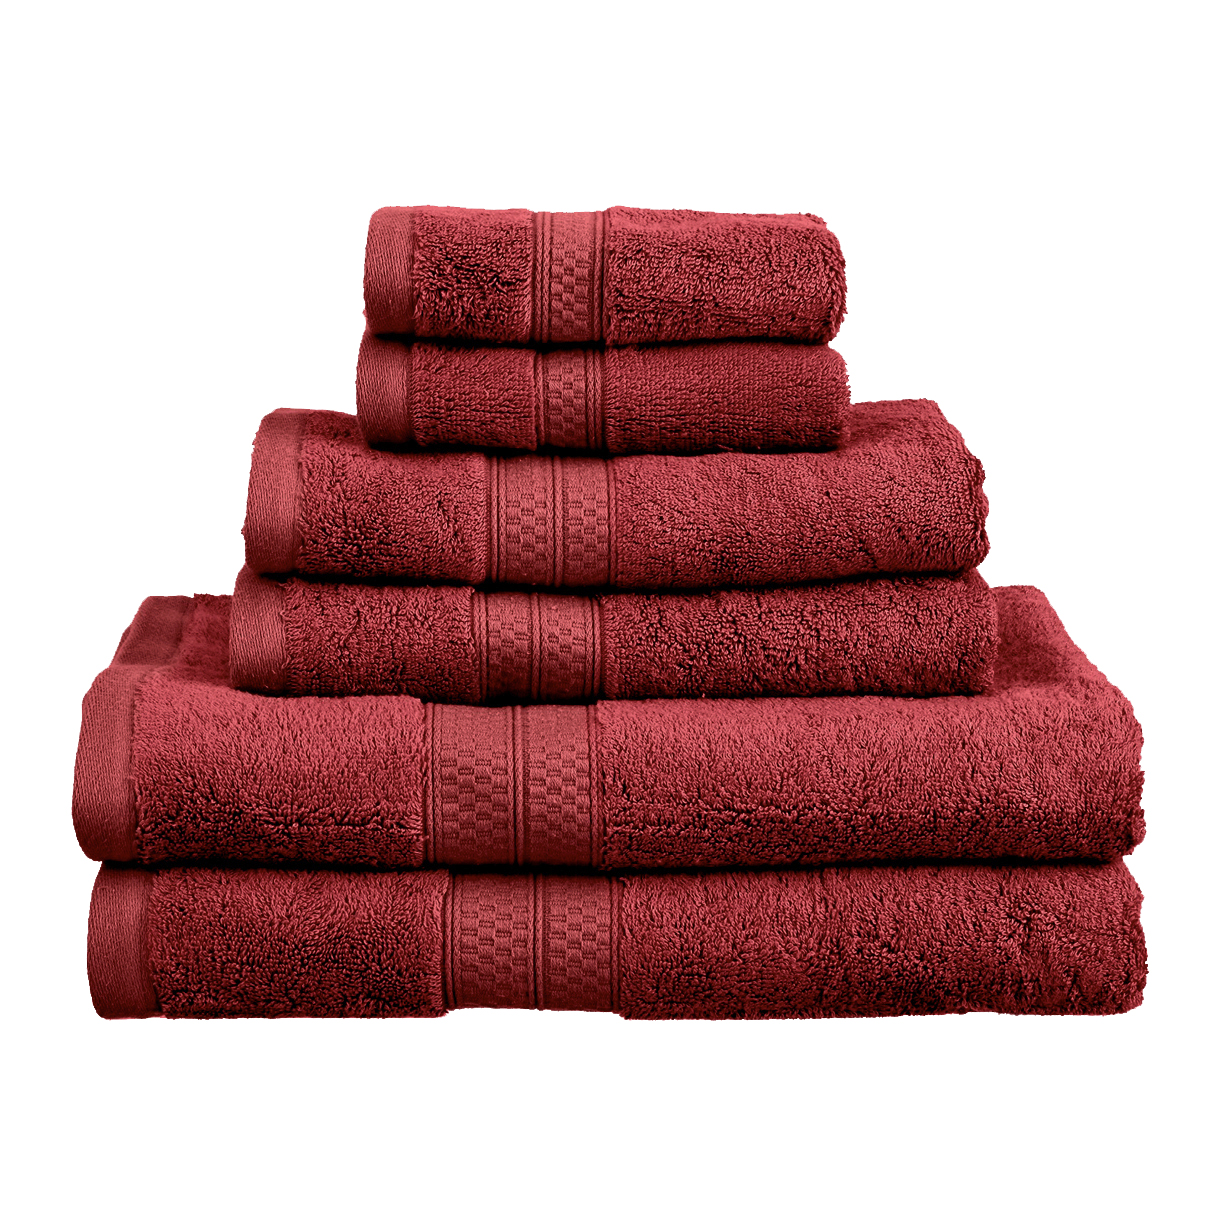 Superior 650GSM Rayon From Bamboo 6-Piece Towel Set